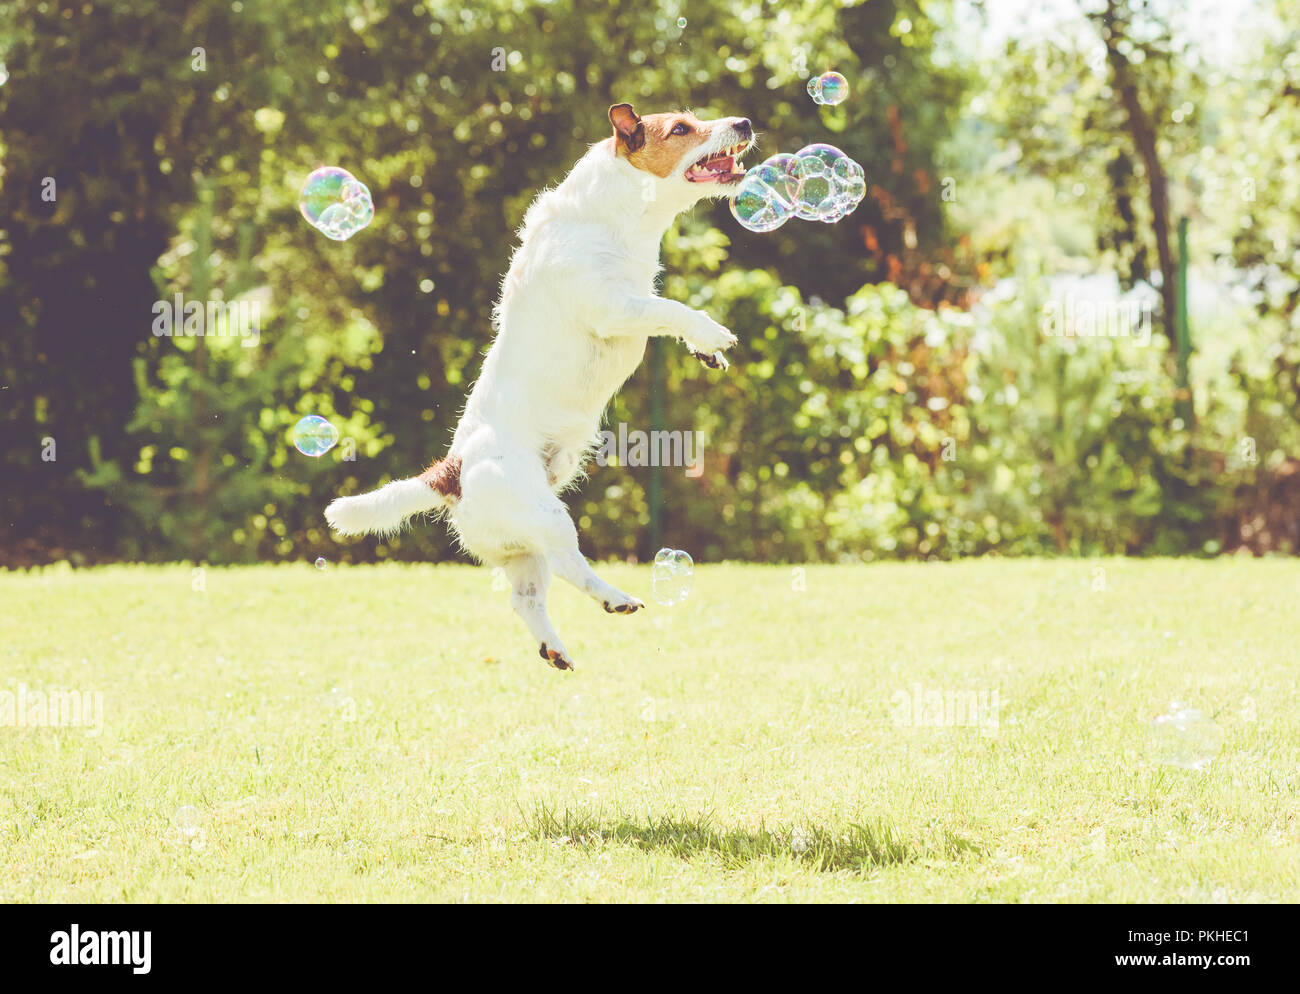 Playful dog jumps high to catch soap bubbles at sunny lawn at hot summer day - Stock Image